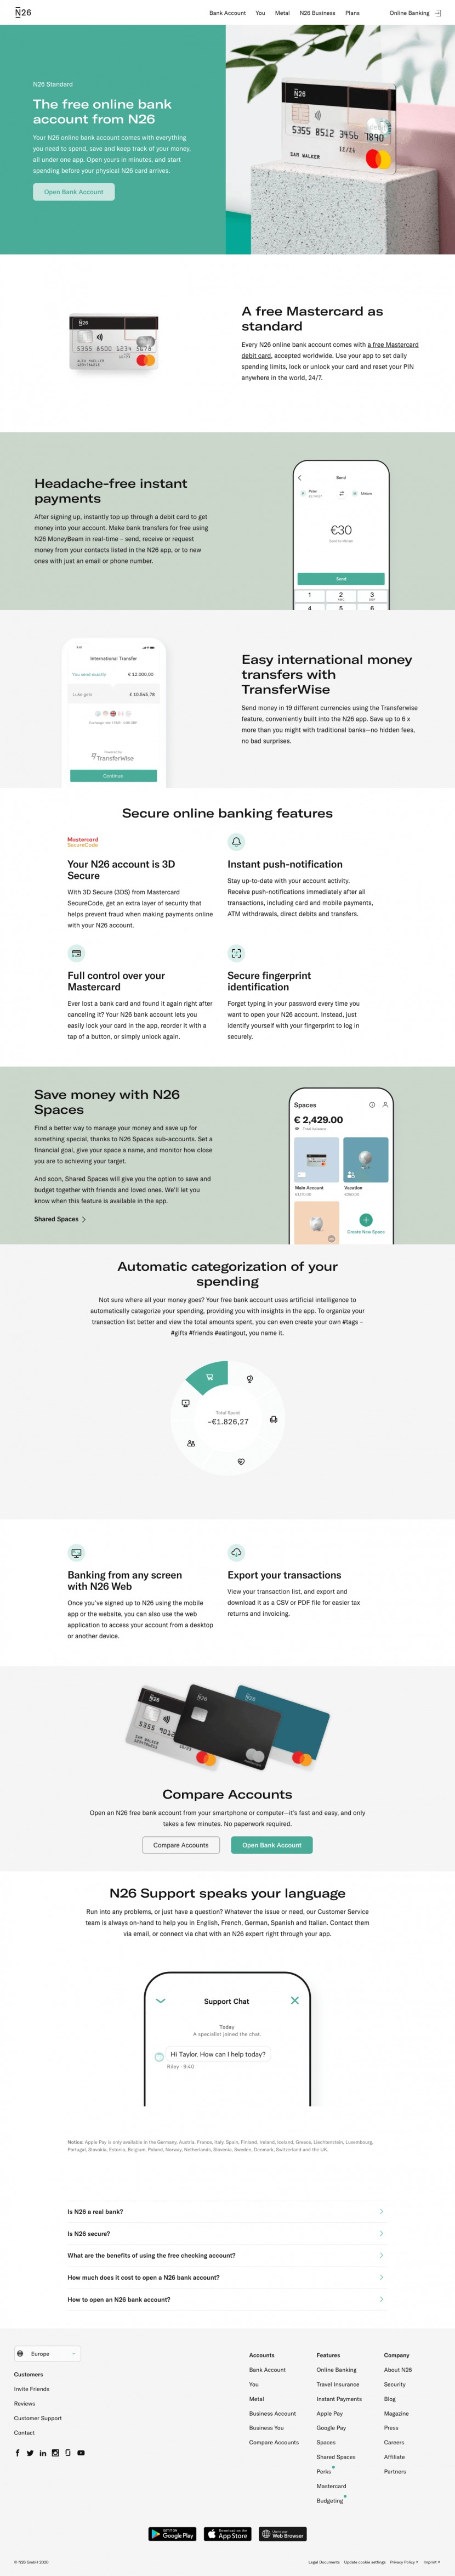 n26-features-page